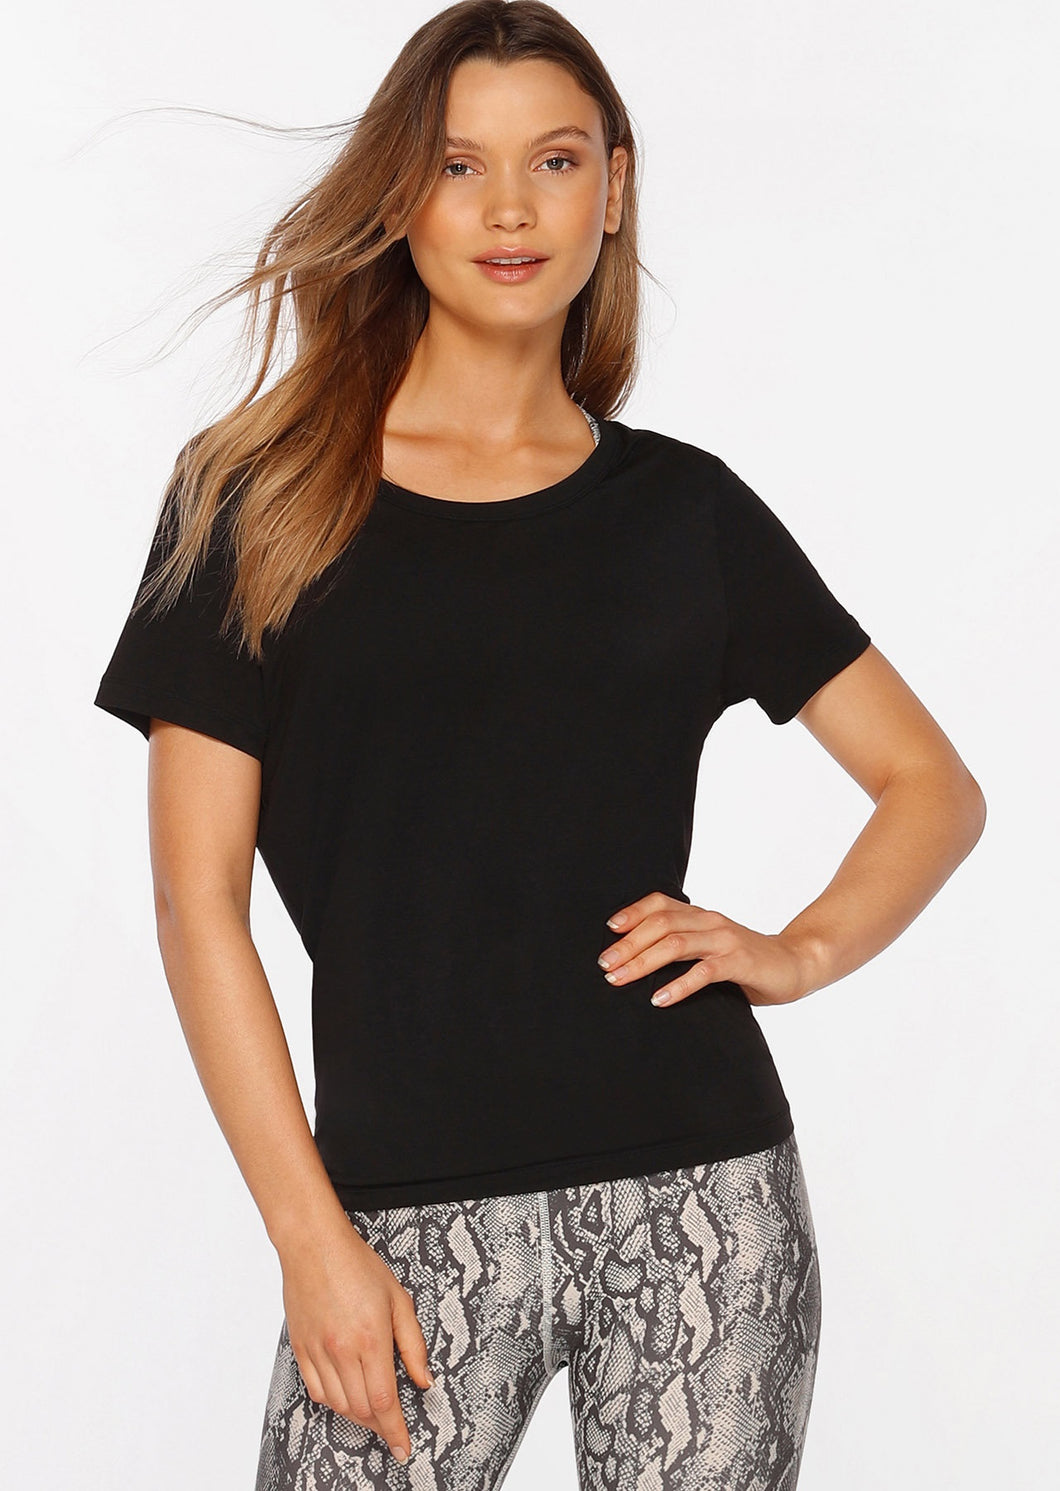 Lorna Jane Tie Back Active Tee